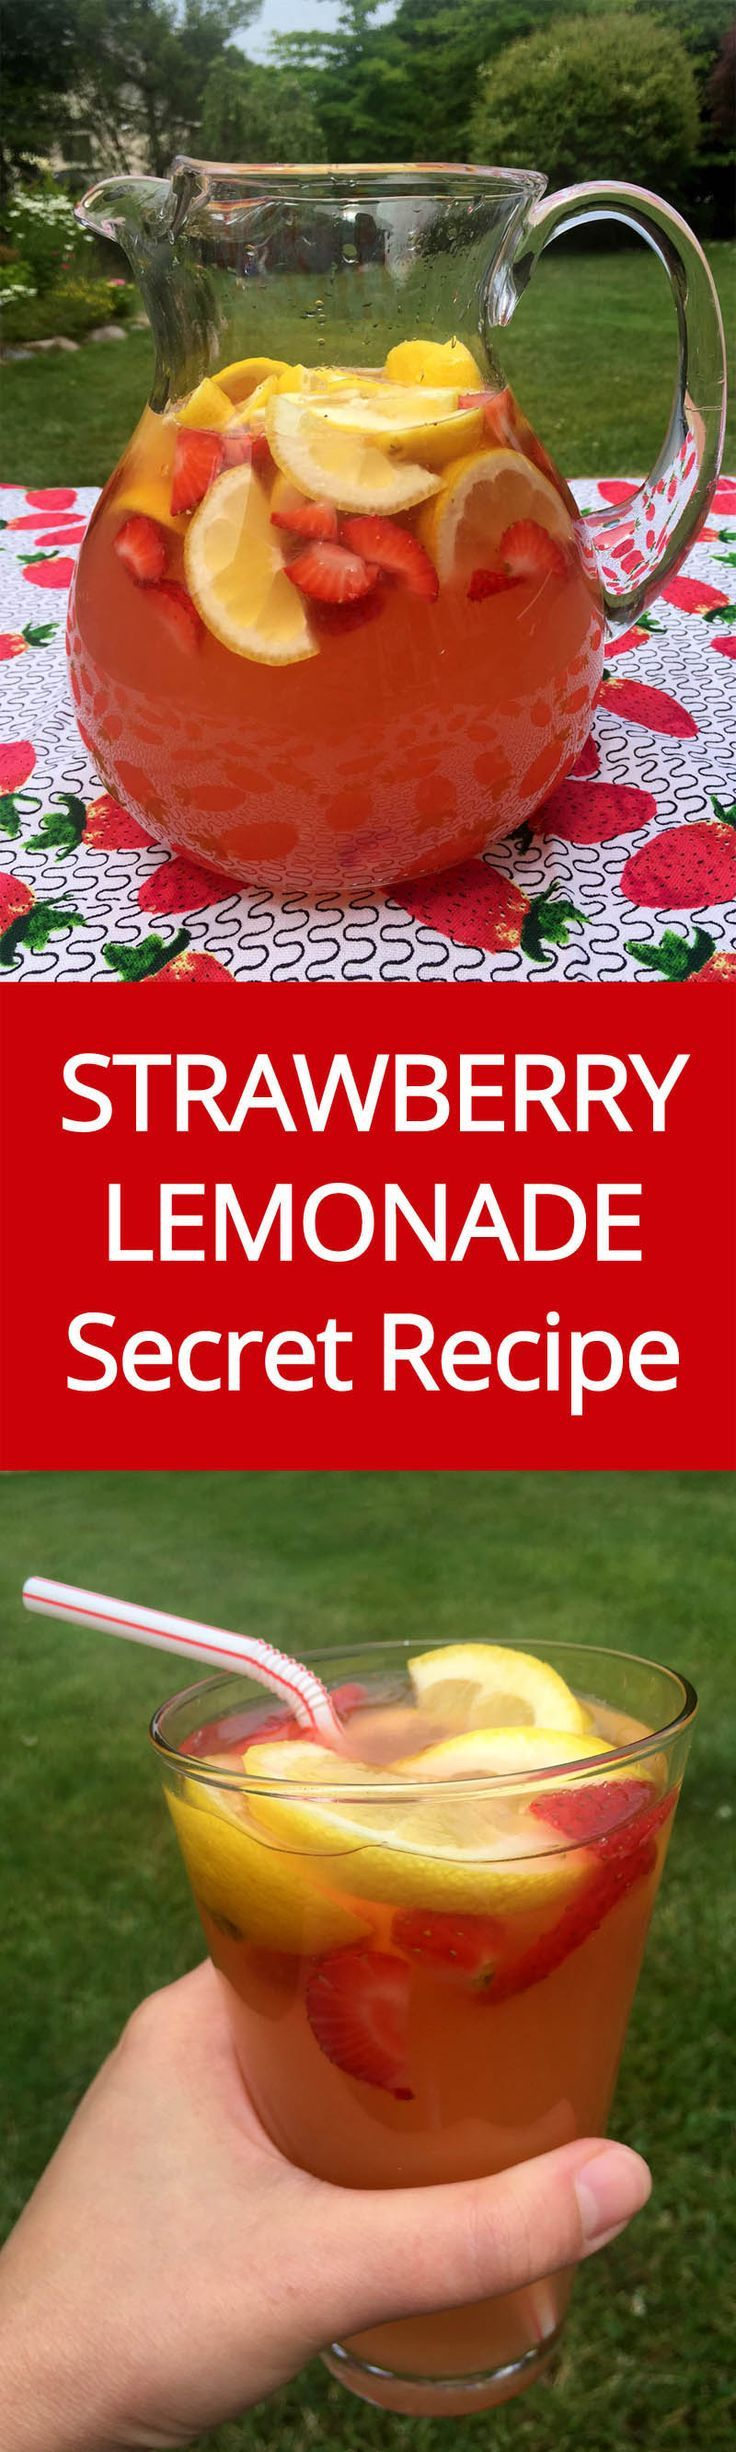 Homemade Strawberry Lemonade Recipe With Freshly Squeezed Lemons Strawberry Slices